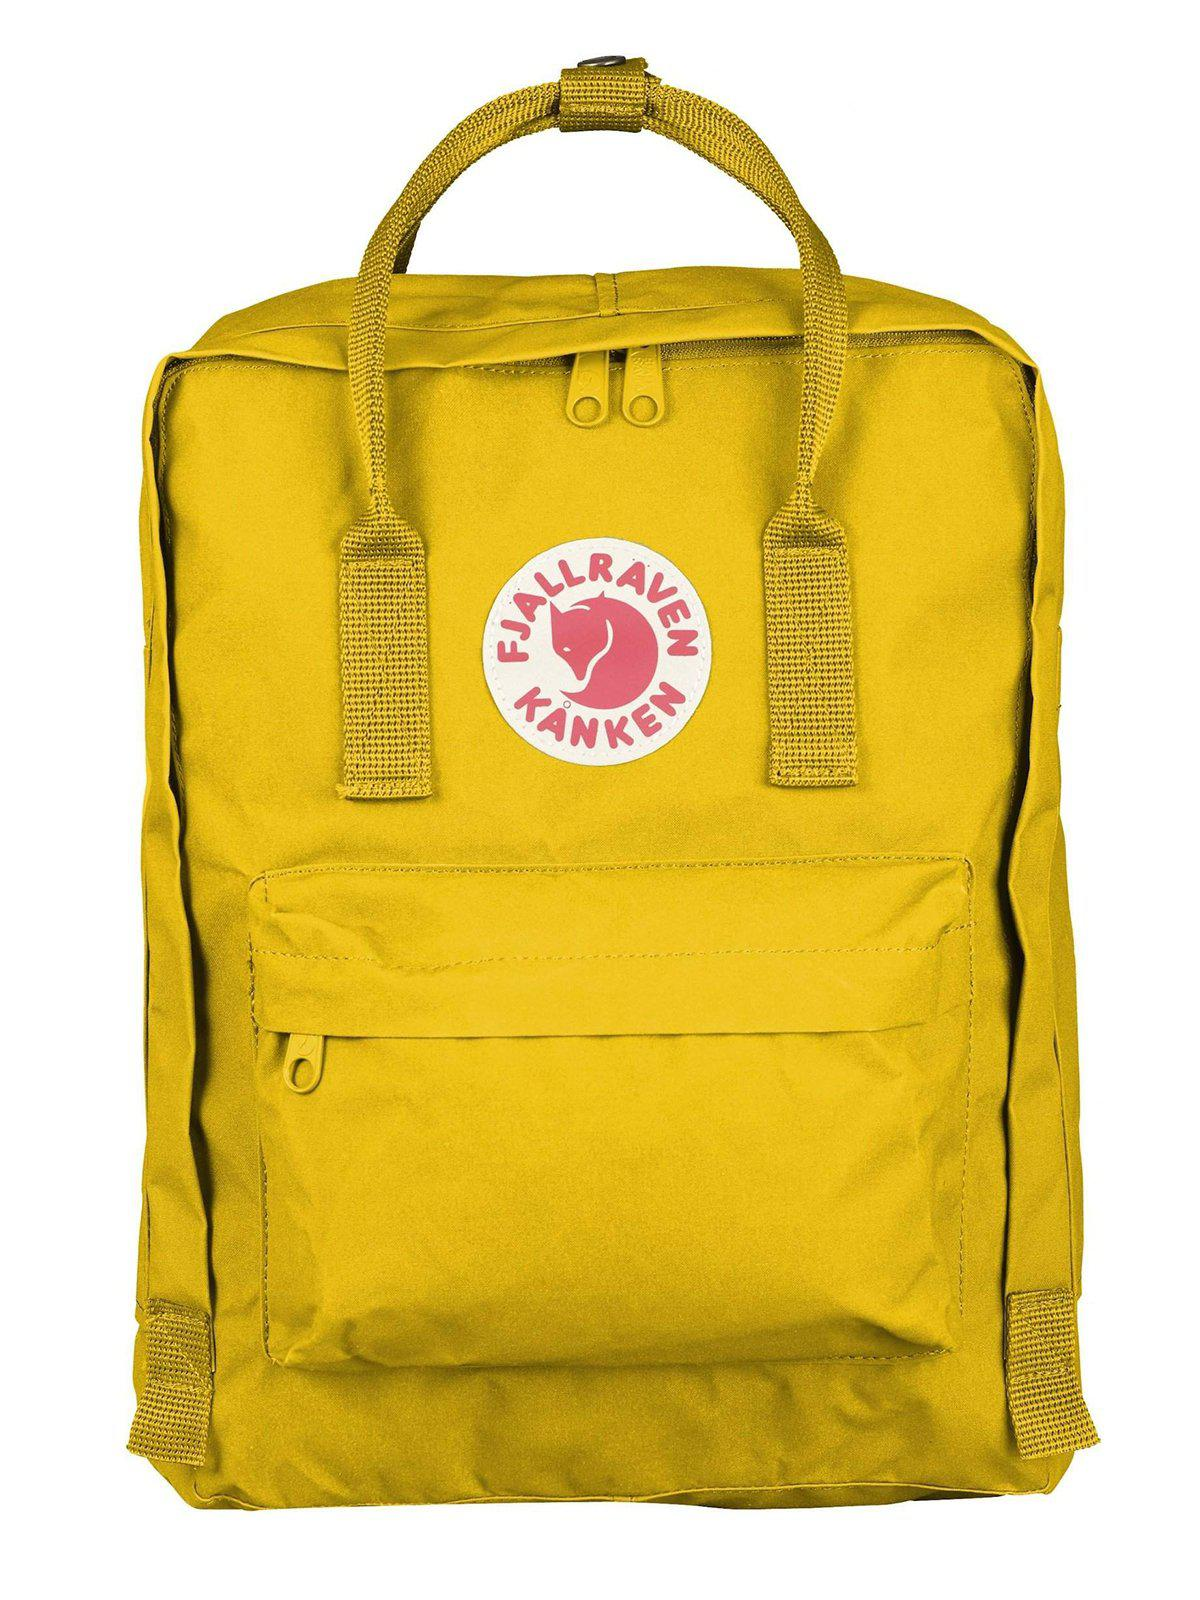 Fjallraven Kanken Classic Backpack Warm Yellow - MORE by Morello Indonesia